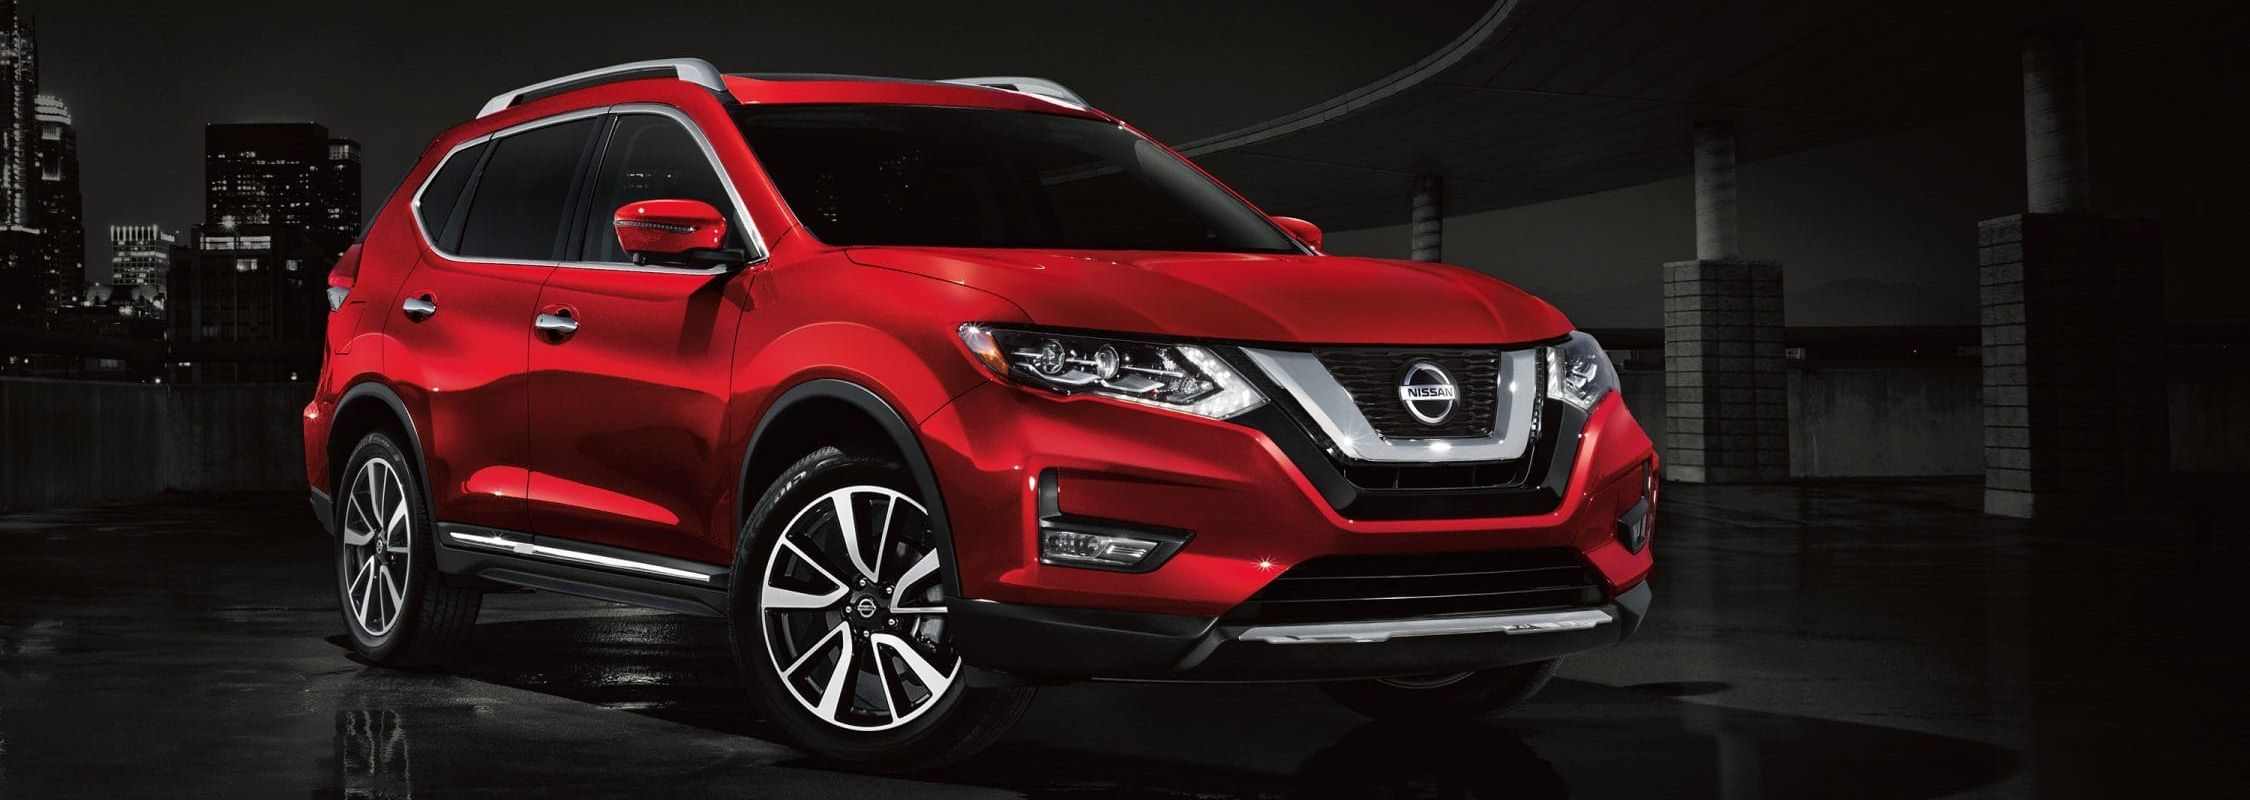 2019 Nissan Rogue Leasing near Stafford, VA